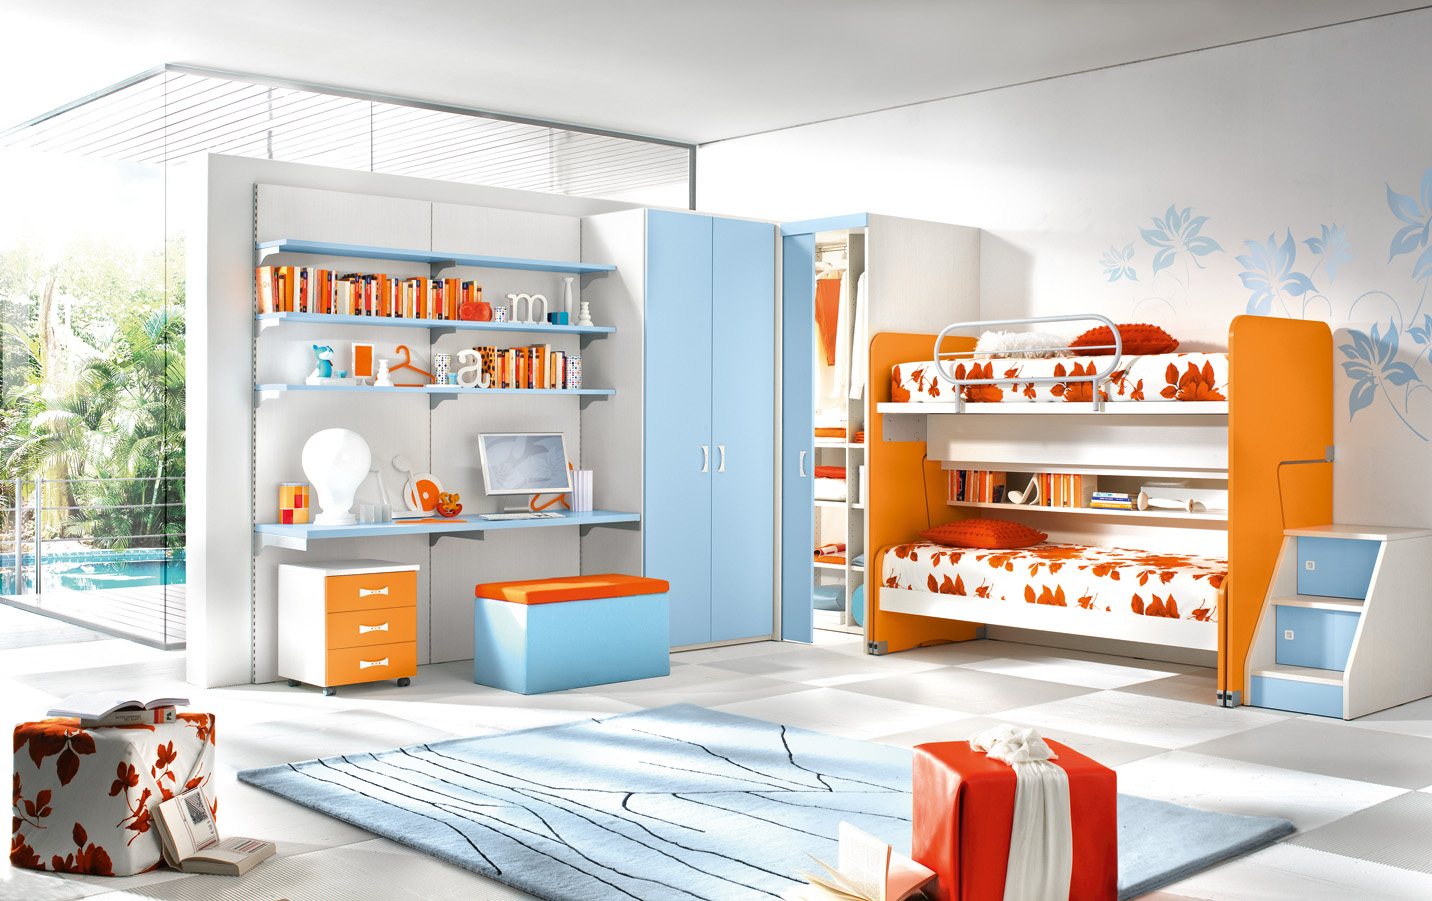 20 contemporary kids room interior design ideas for Room decor for kids